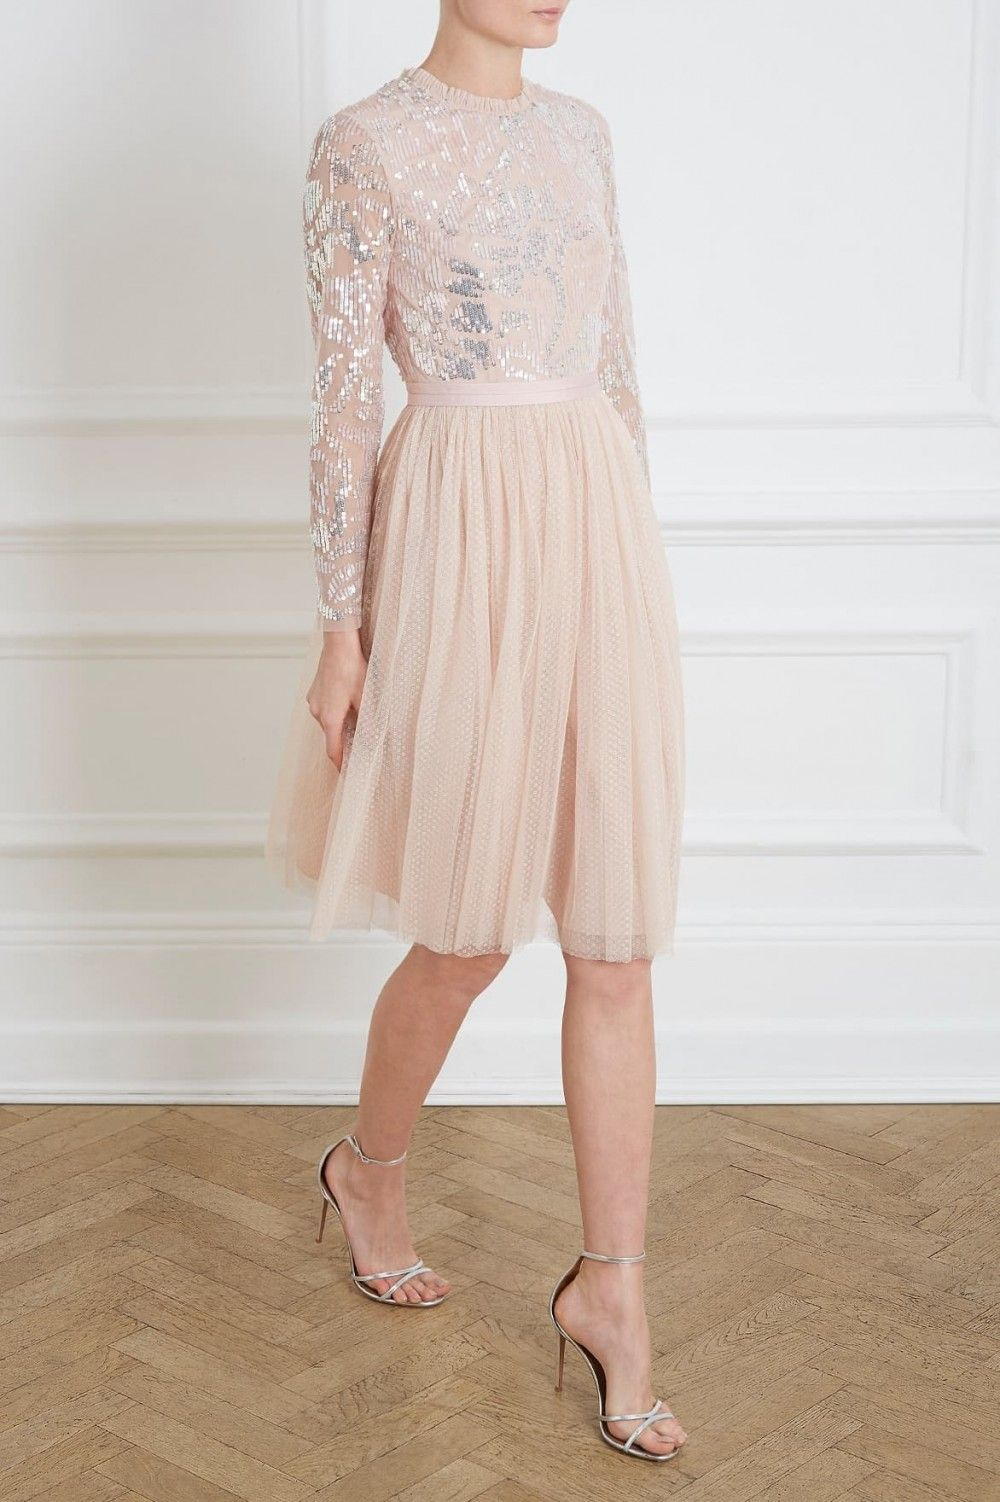 Floral Gloss Bodice Midi Dress in Rose Quartz from the Needle   Thread PS19  Collection ec20f17a5